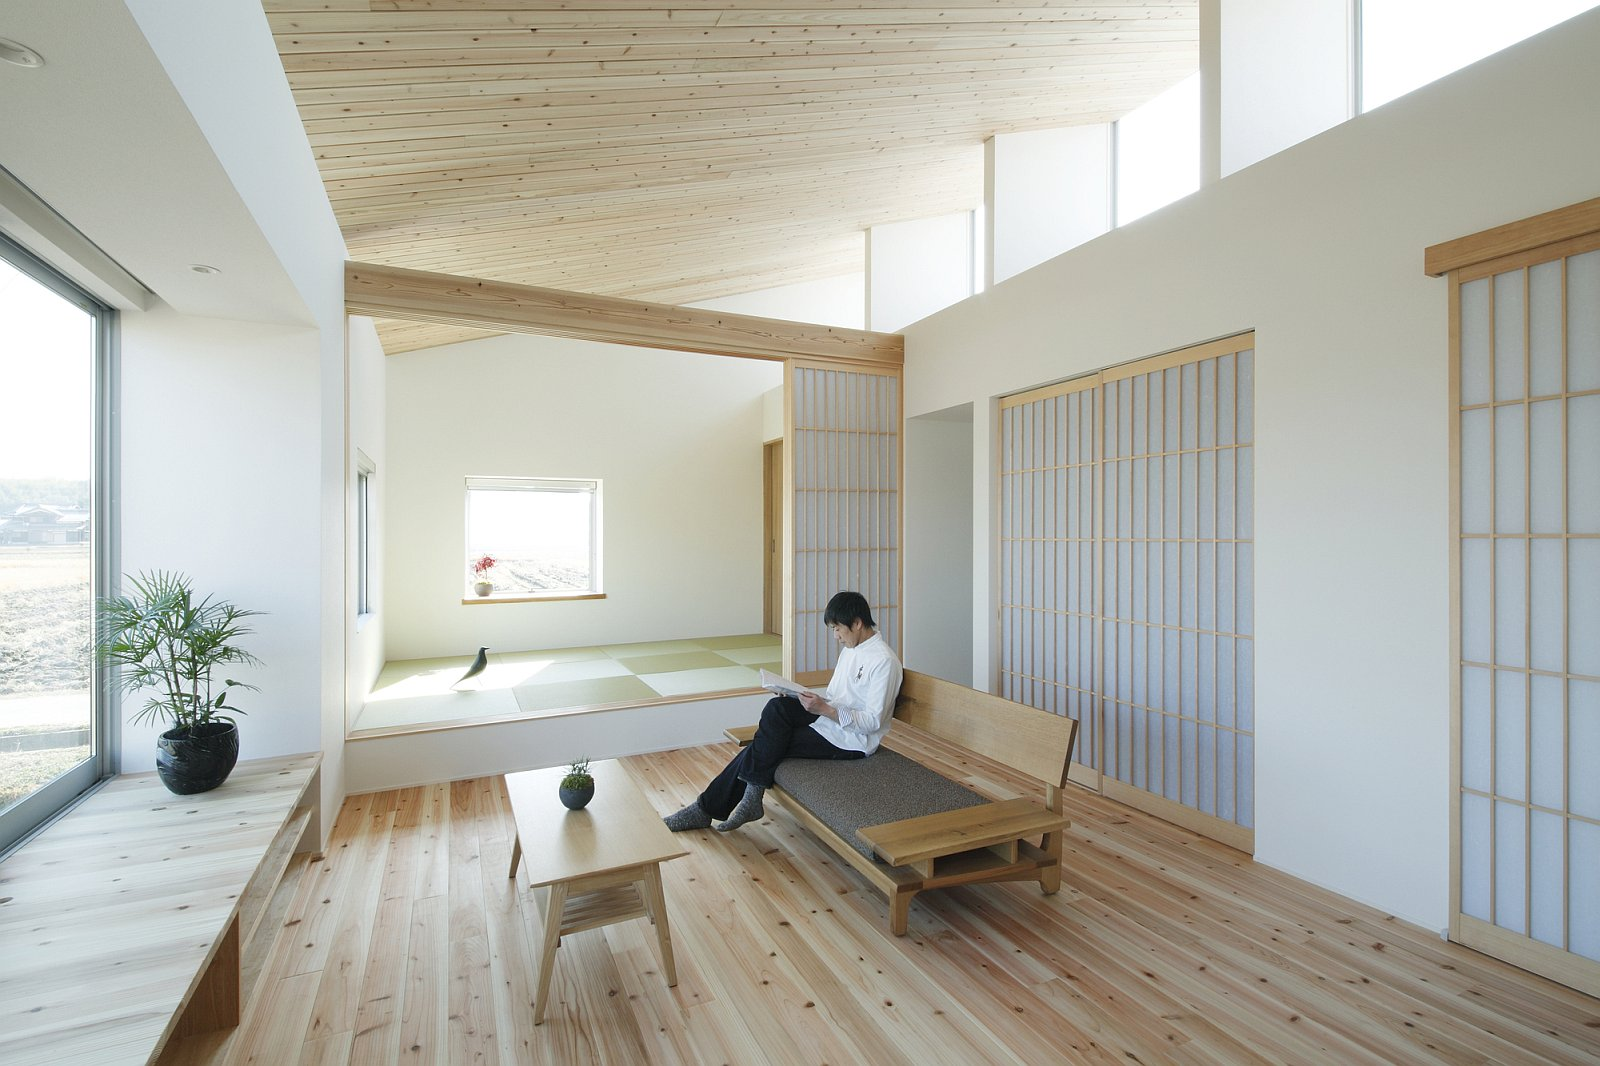 Japanese Office Design Gallery A Modest Light Filled Home In Rural Japan Alts Design